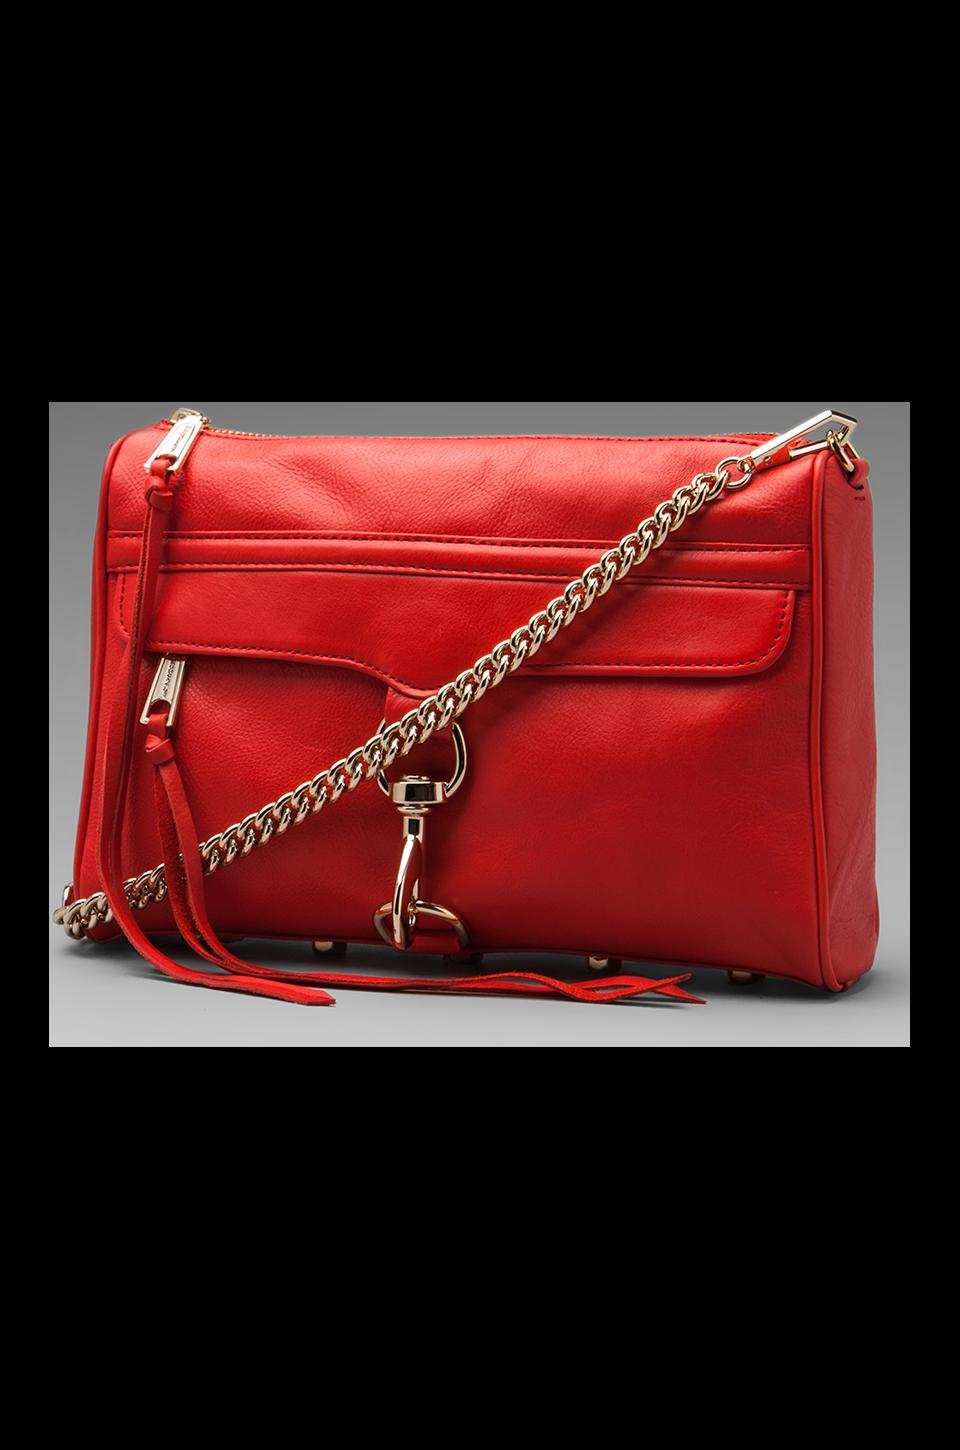 Rebecca Minkoff Mac Clutch in Fire Engine